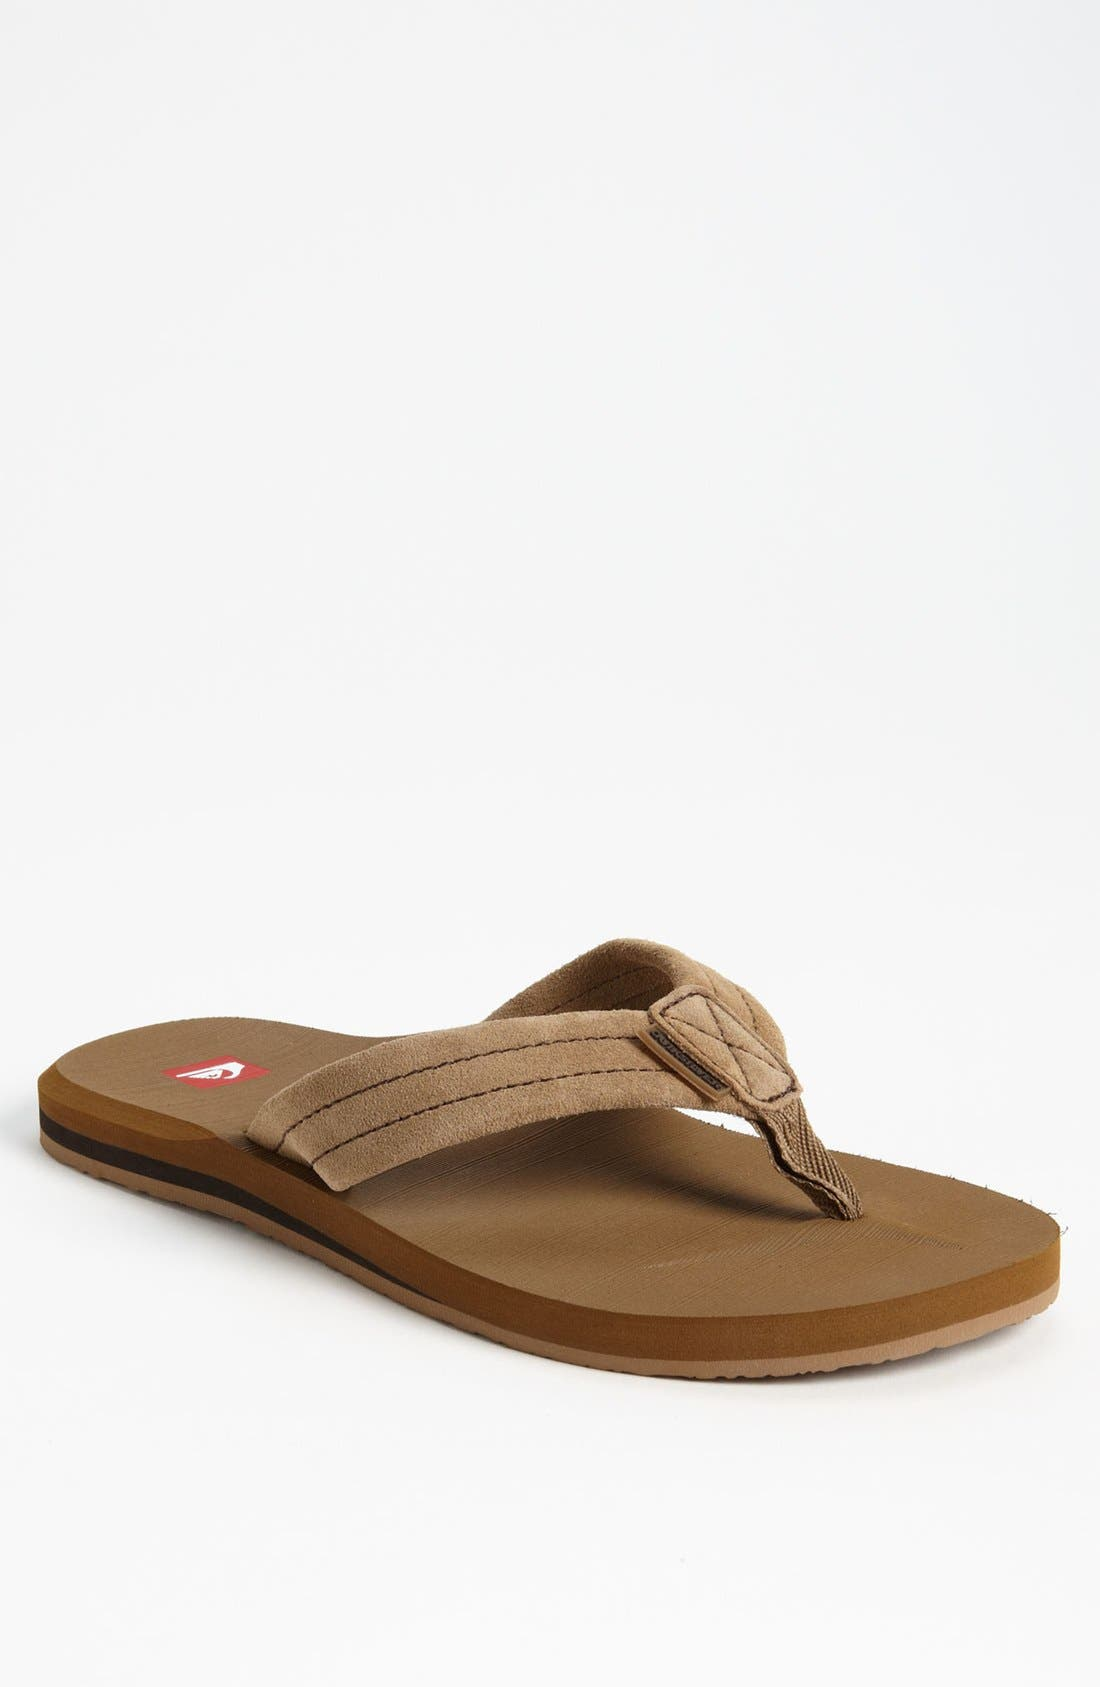 Alternate Image 1 Selected - Quiksilver 'Carver 2' Flip Flop (Men)